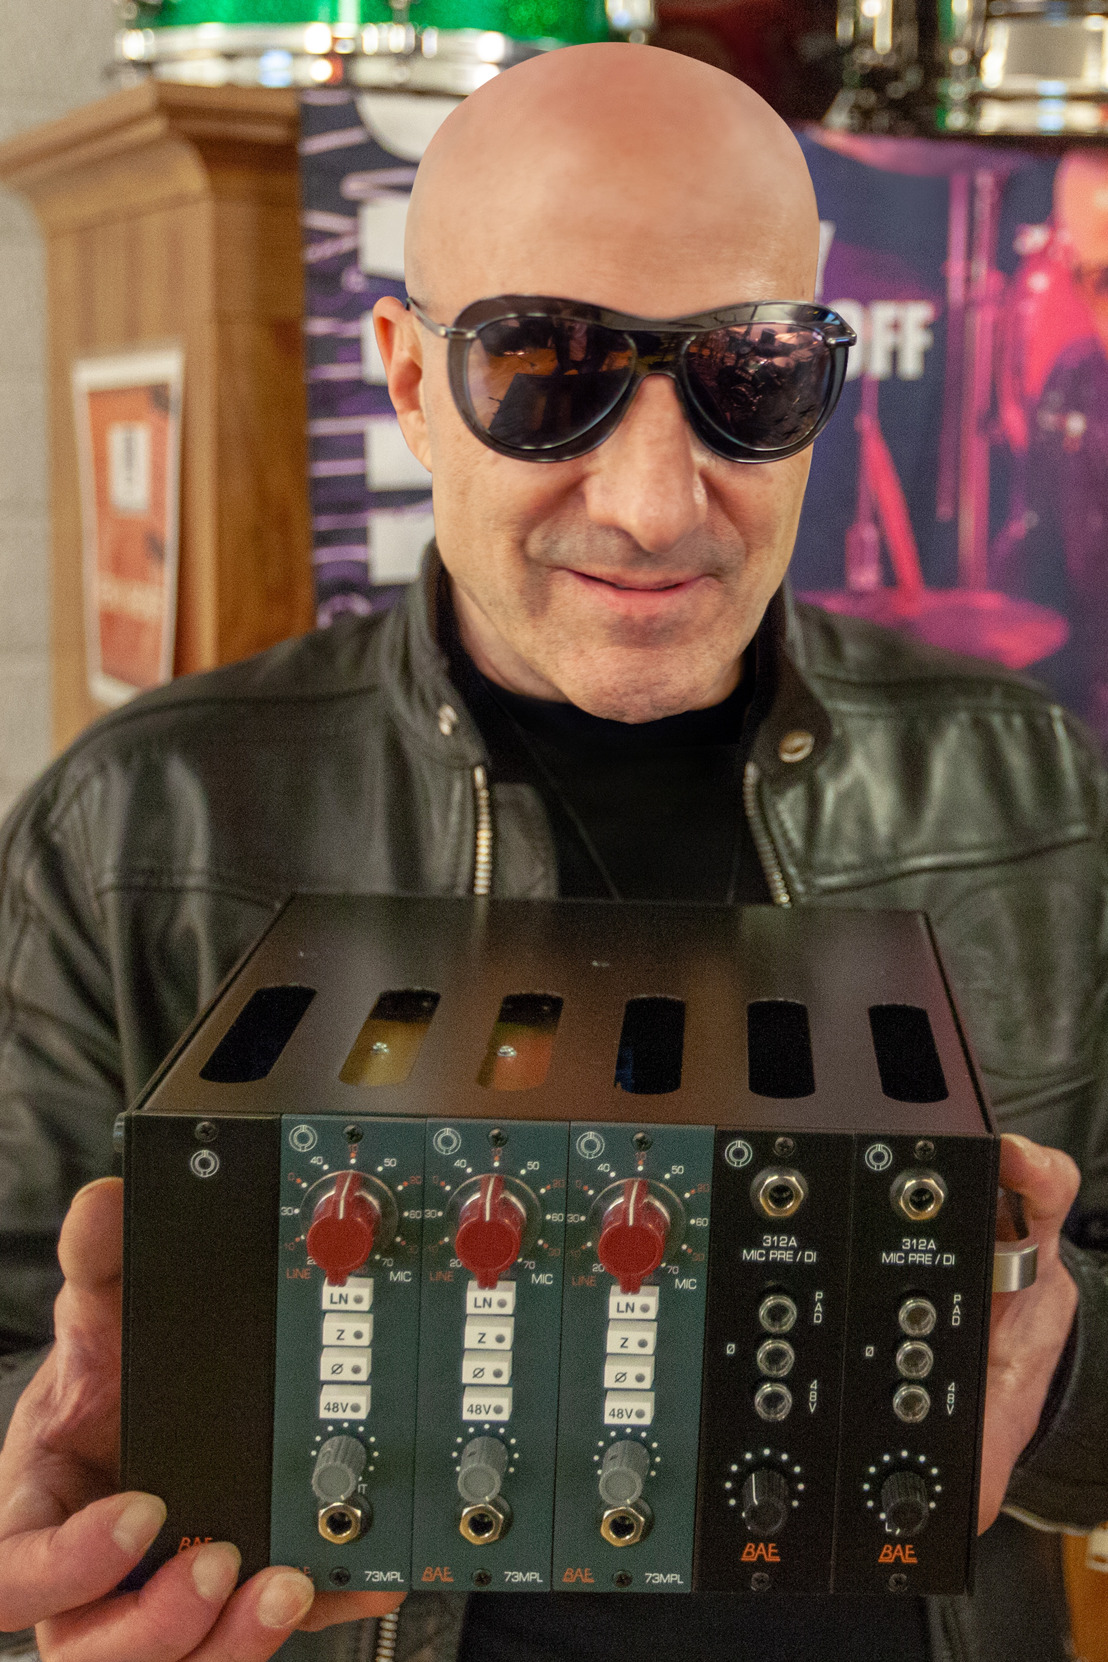 BAE Announces Recording Bundle with World-Class Drummer Kenny Aronoff